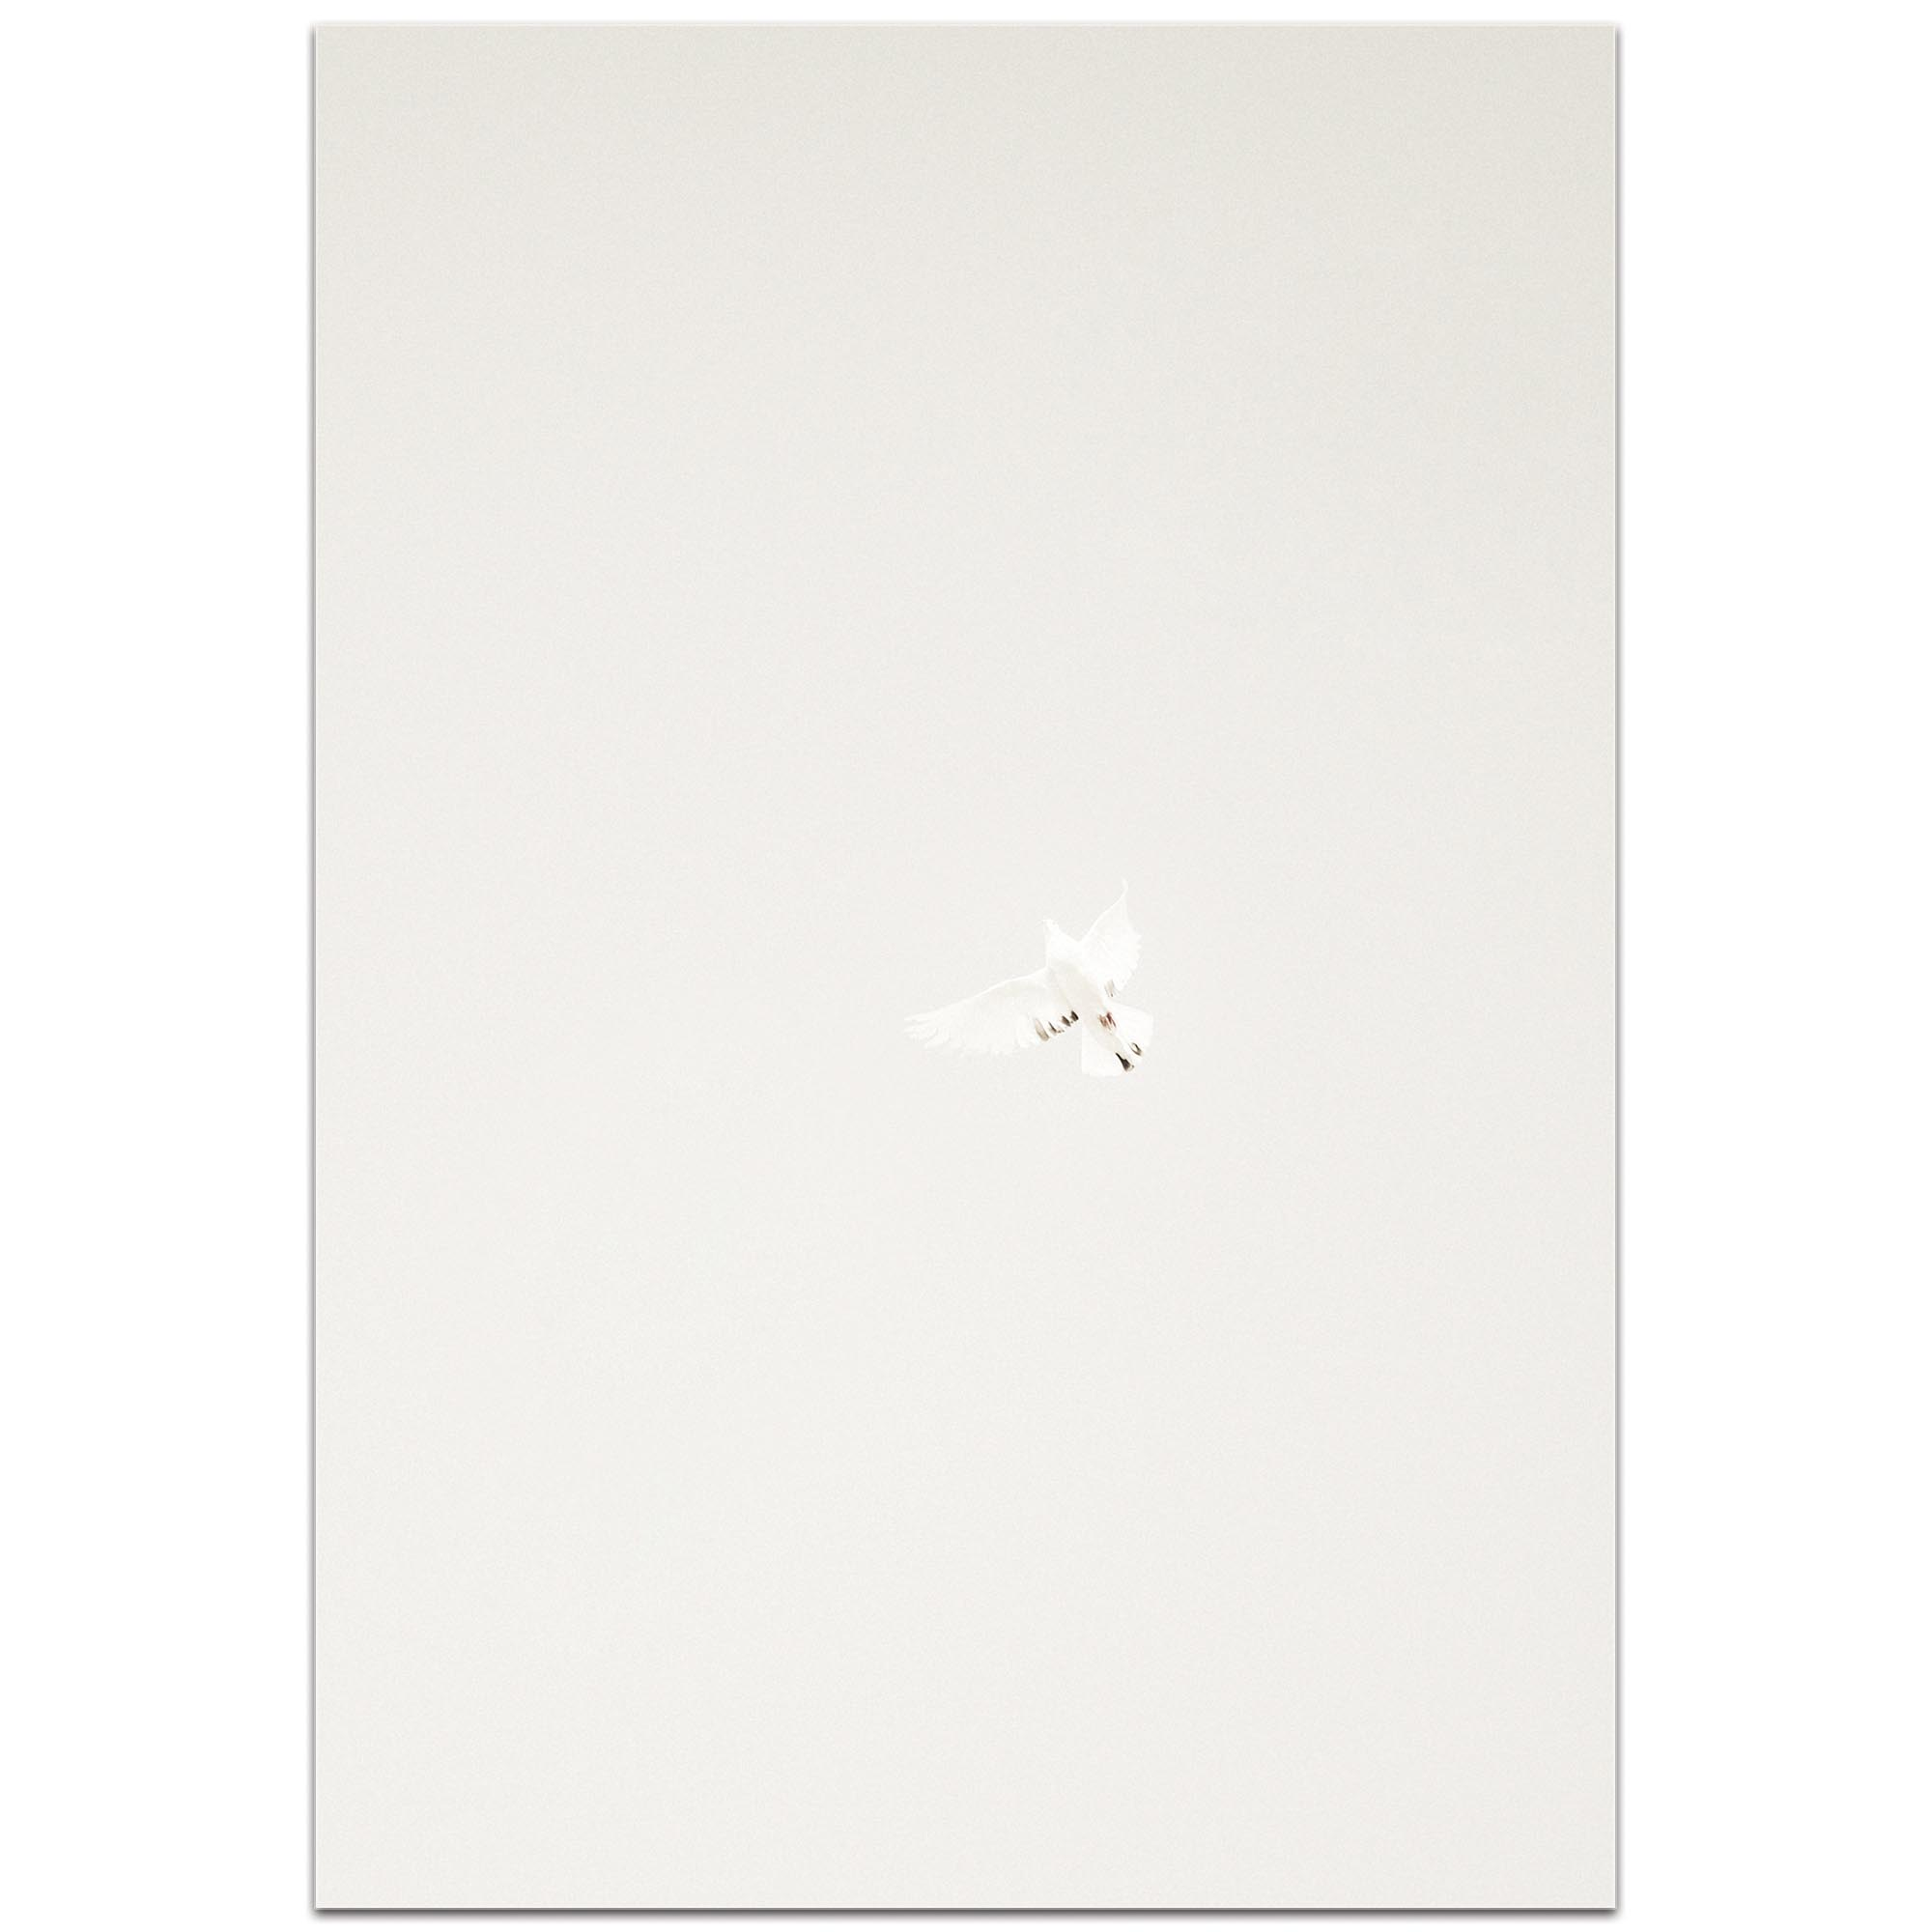 Minimalist Wall Art 'Flying Solo' - Wildlife Decor on Metal or Plexiglass - Image 2